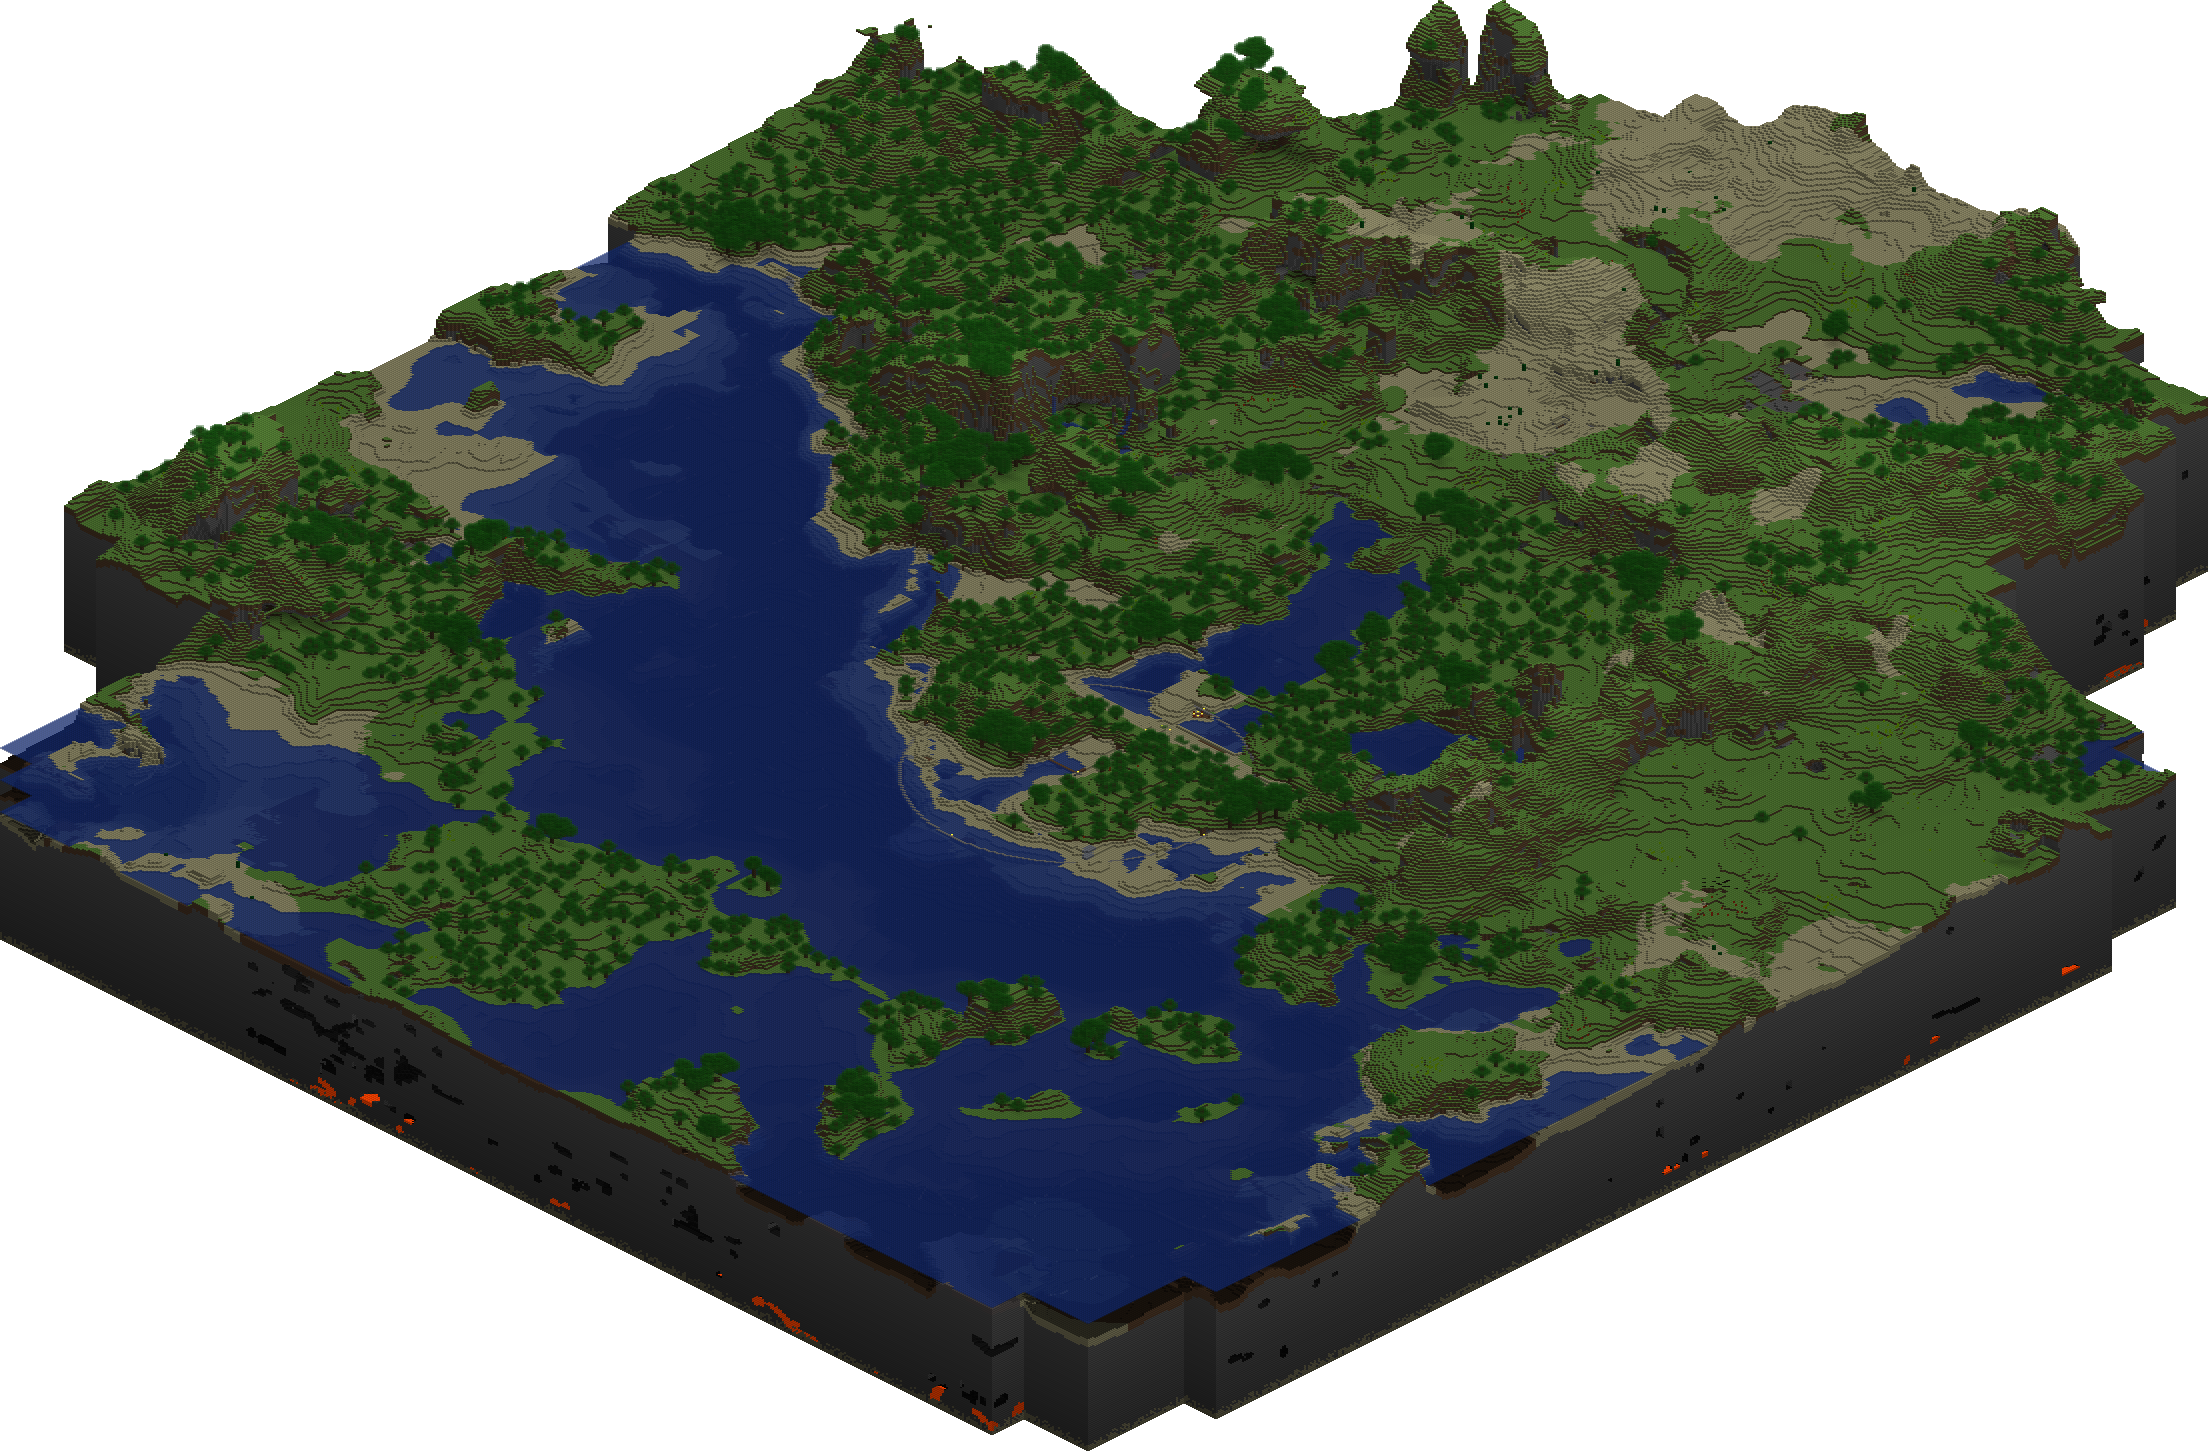 Master marf resuming minecraft map of a newly generated minecraft world gumiabroncs Gallery